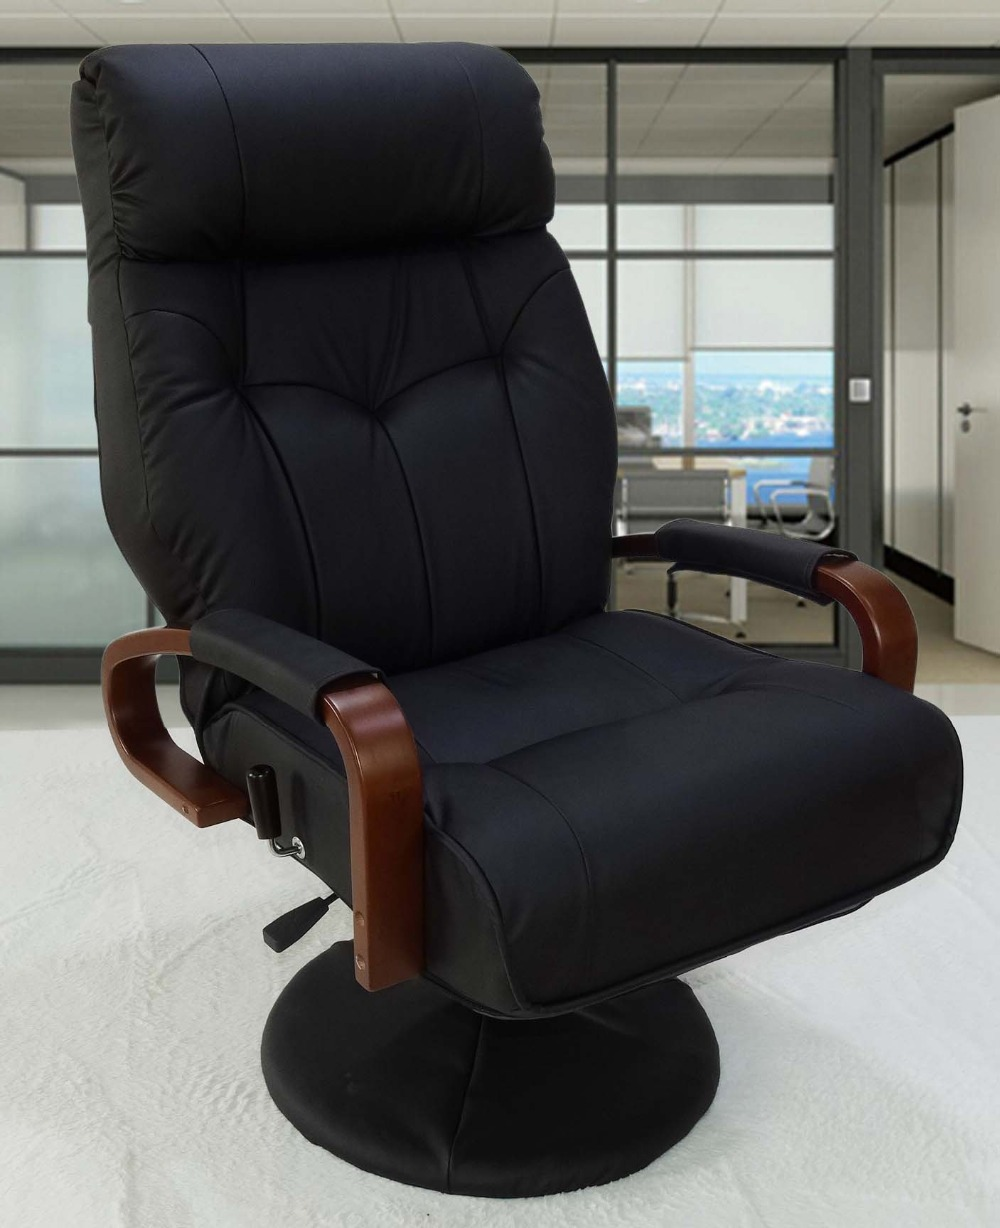 home josh furniture chair office recliner seating chairs reclining desks desk contemporary